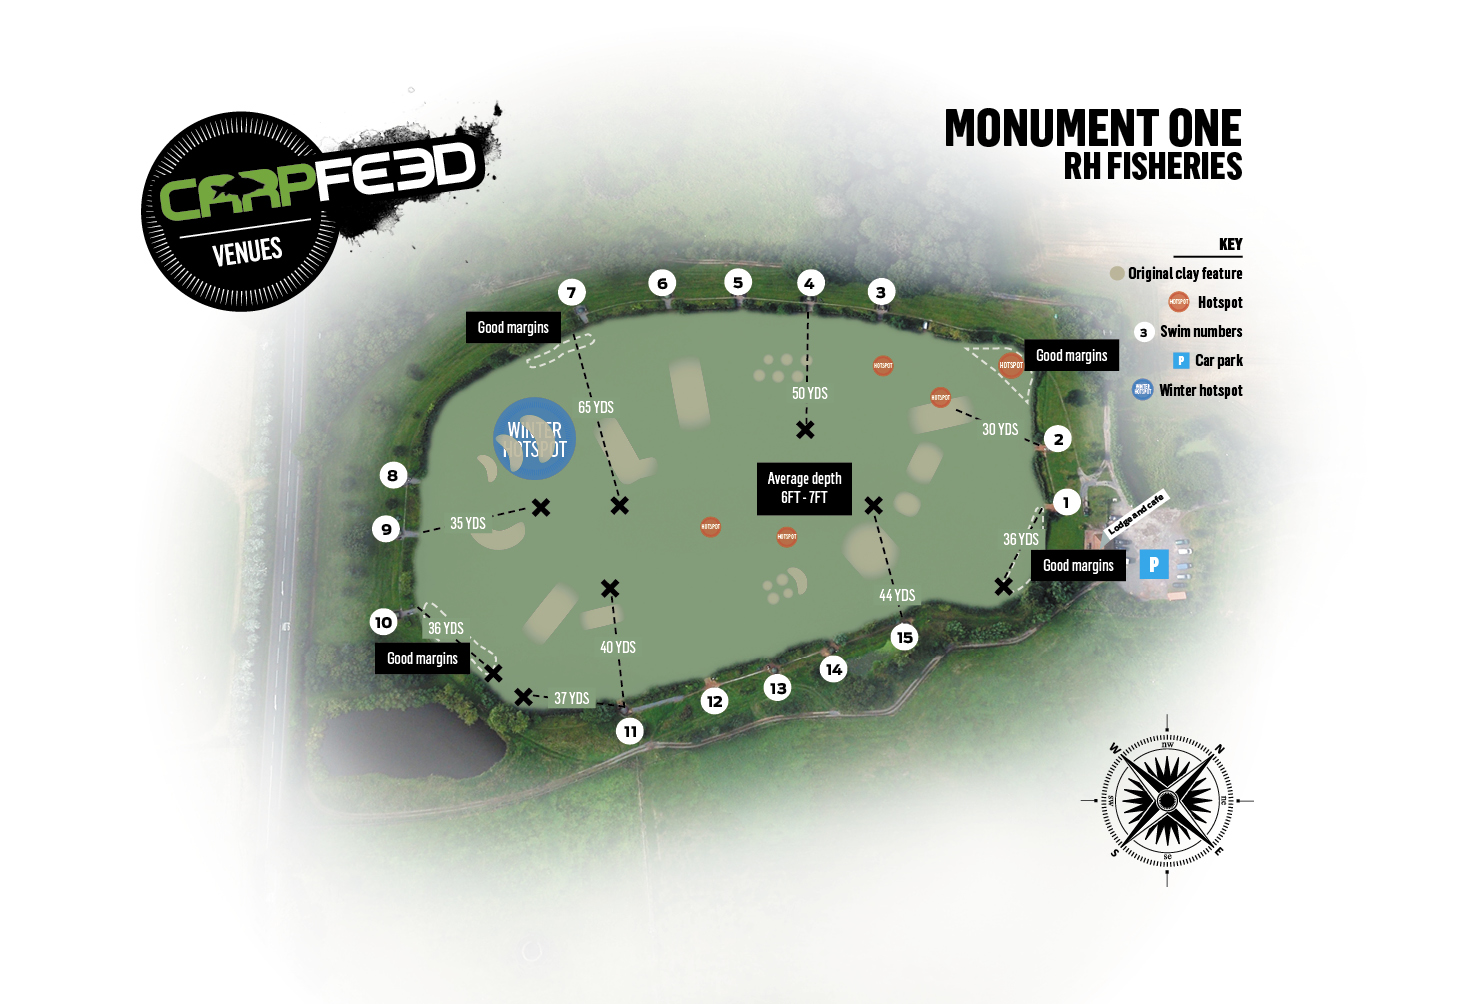 CLICK THE LAKE MAP FOR OUR FULL GUIDE TO M1